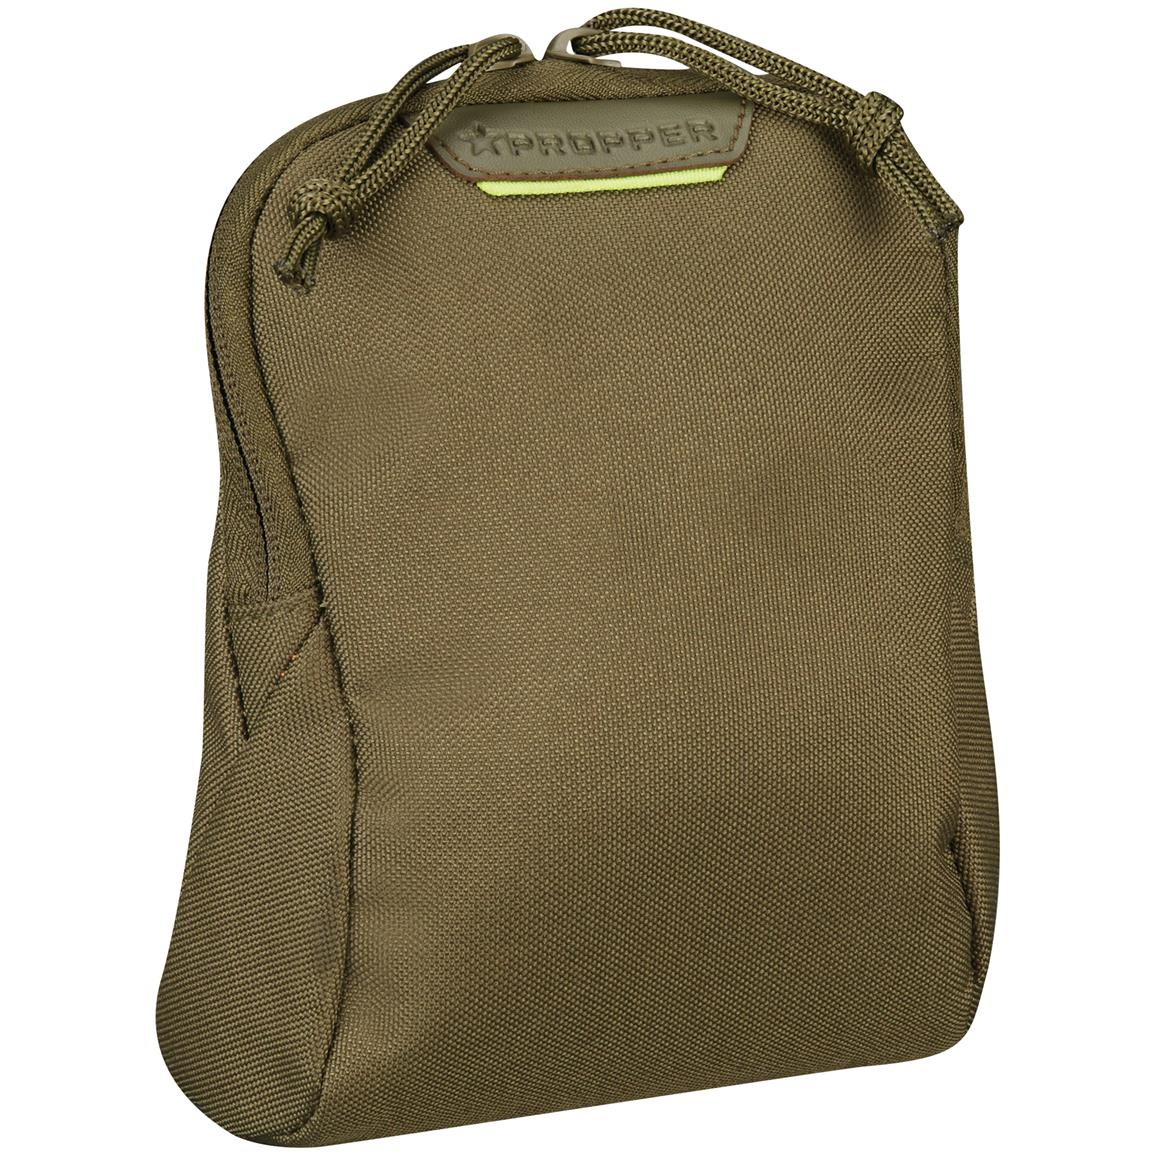 "Propper 7"" x 6"" Media Pouch with MOLLE, Olive Drab"